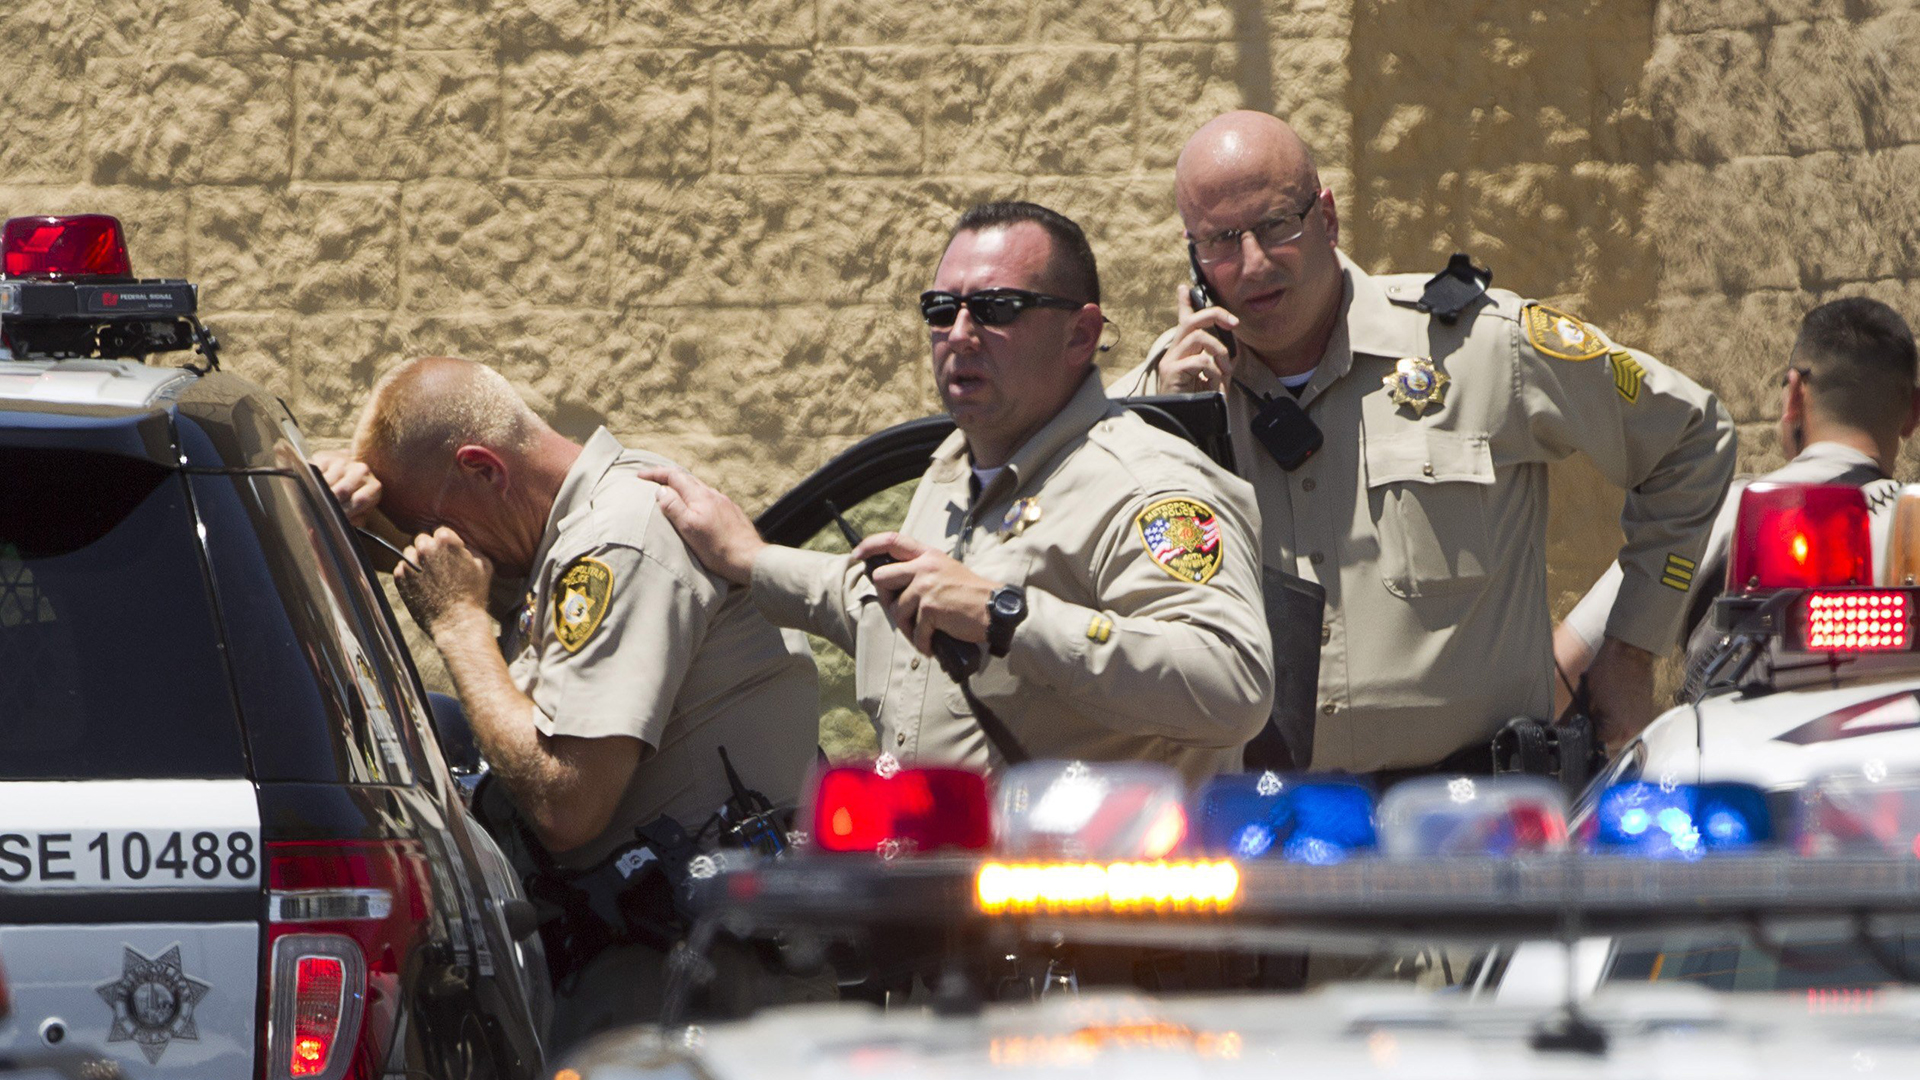 Two Cops, Three Others Killed in Las Vegas Shooting Spree